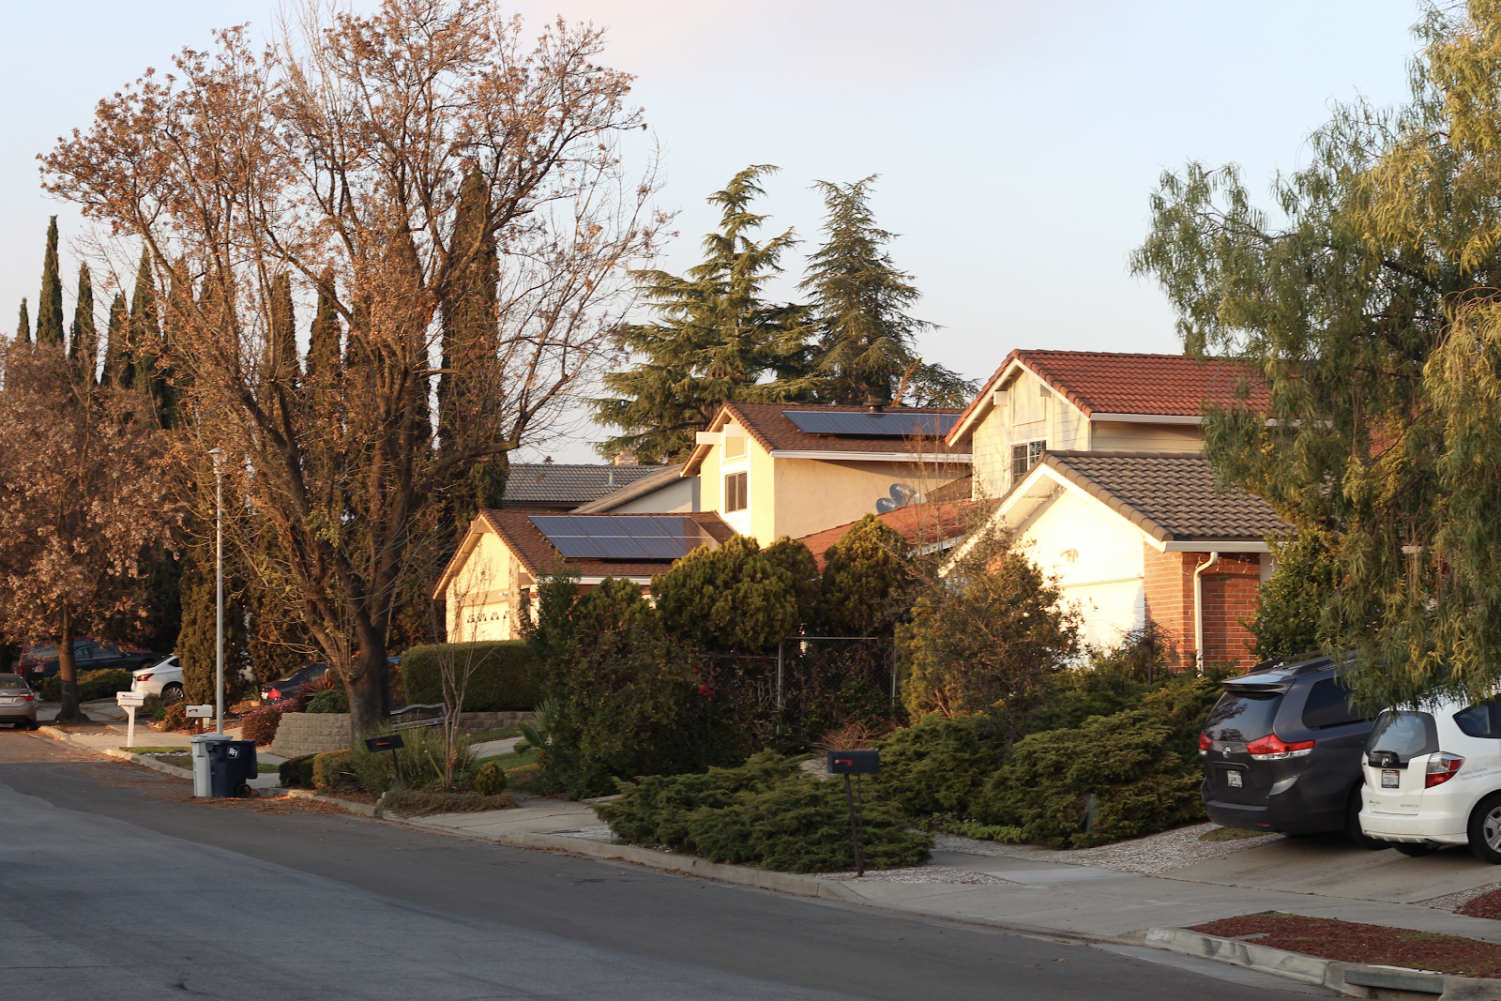 A Fremont neighborhood where rent prices exceed $3,000 per month.